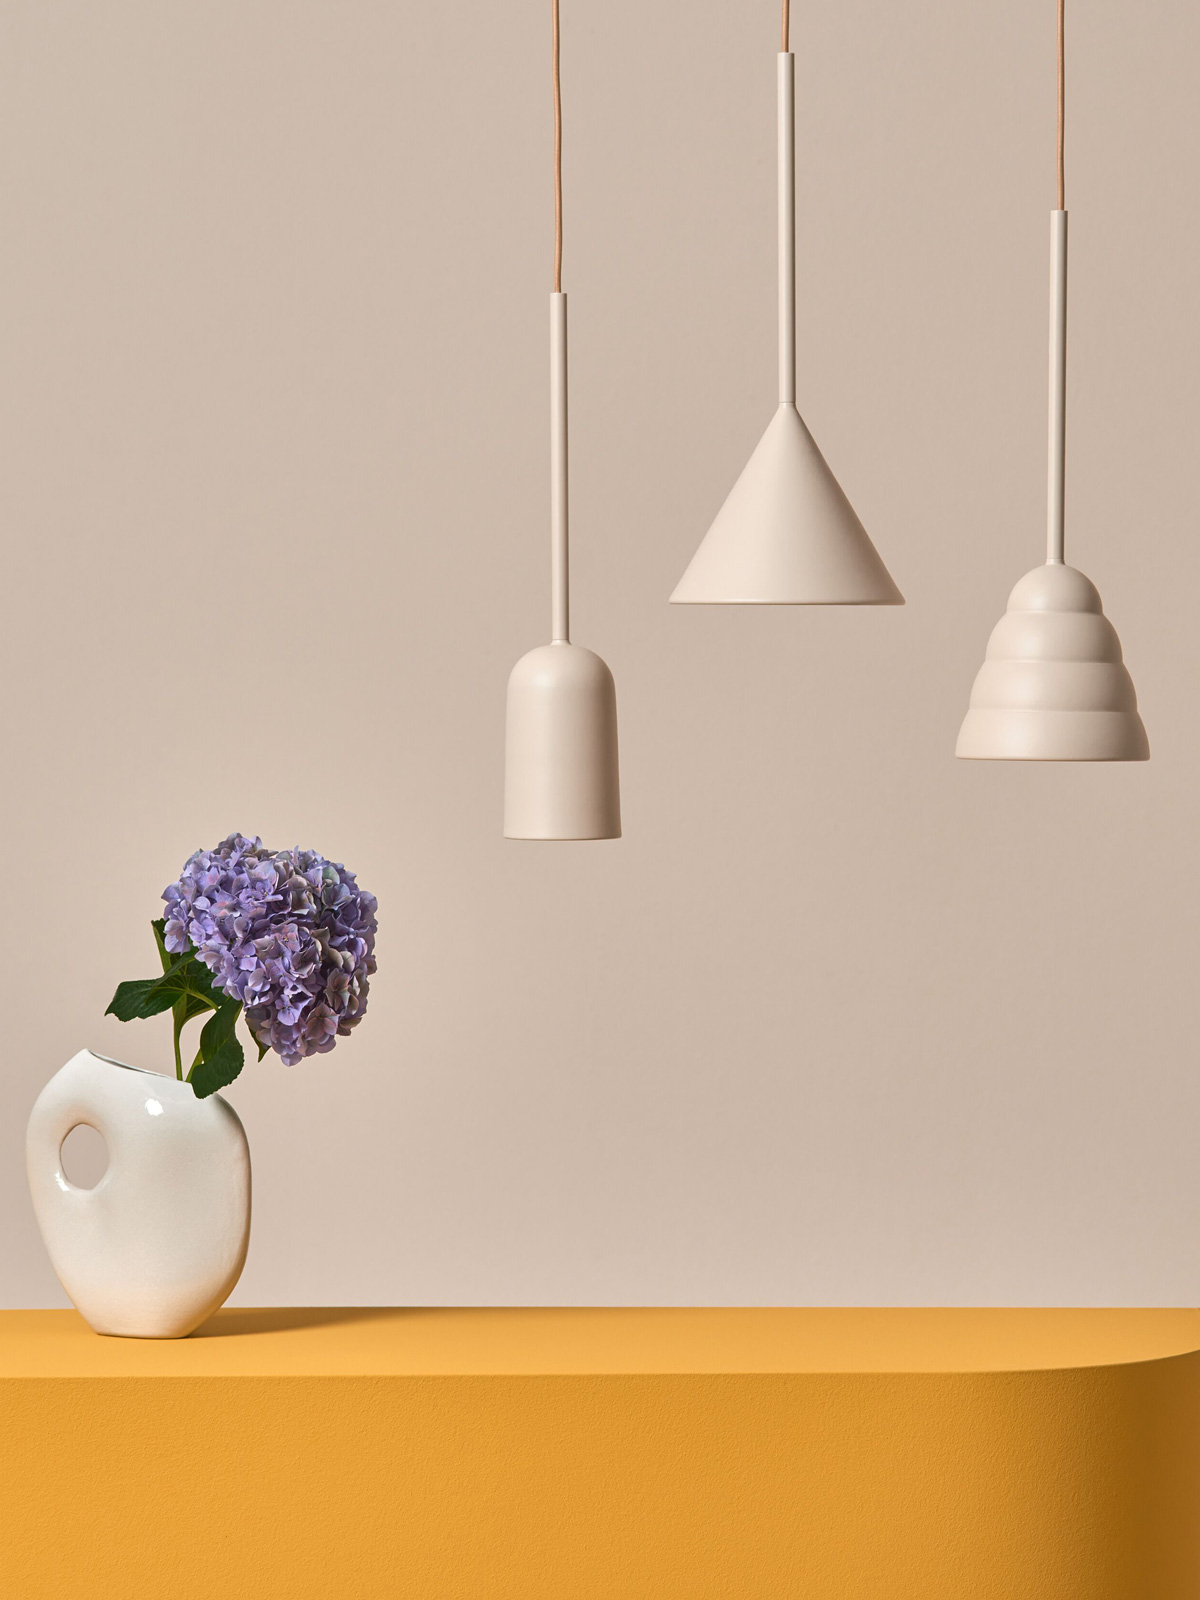 DesignOrt Blog: Dekorative Spotlights LED Leuchte von Schneid Made in Germany Figura